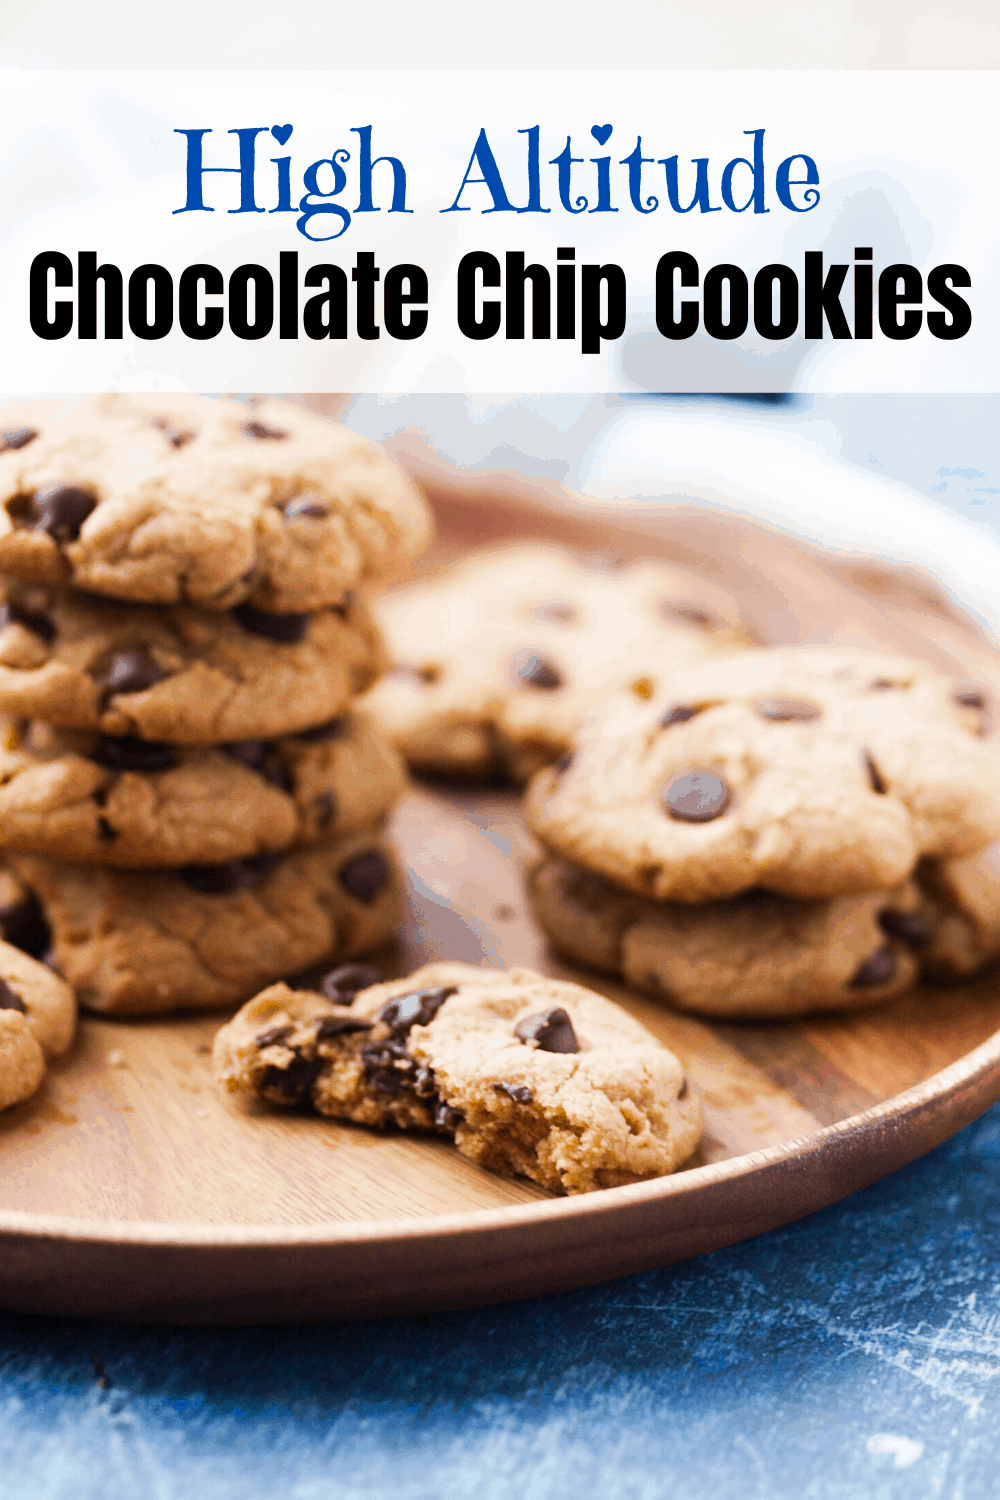 A pinterest pin for high altitude chocolate chip cookies. In the picture is a platter of the cookies.